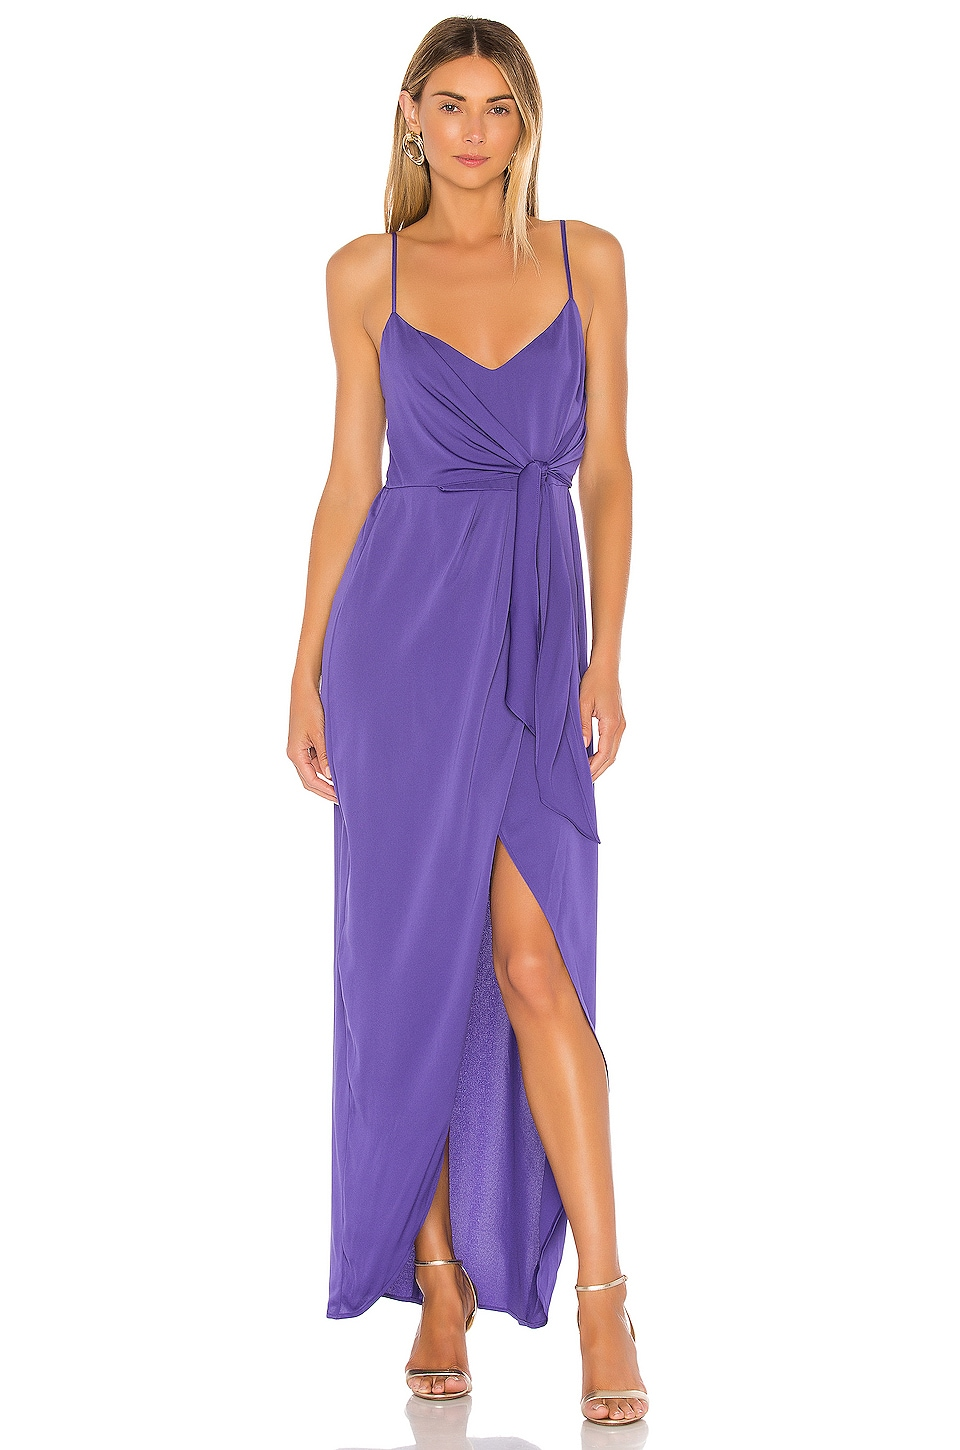 Tie Wrap Maxi Dress             BCBGeneration                                                                                                                                         Sale price:                                                                       CA$ 77.12                                                                                                  Previous price:                                                                       CA$ 170.20 13